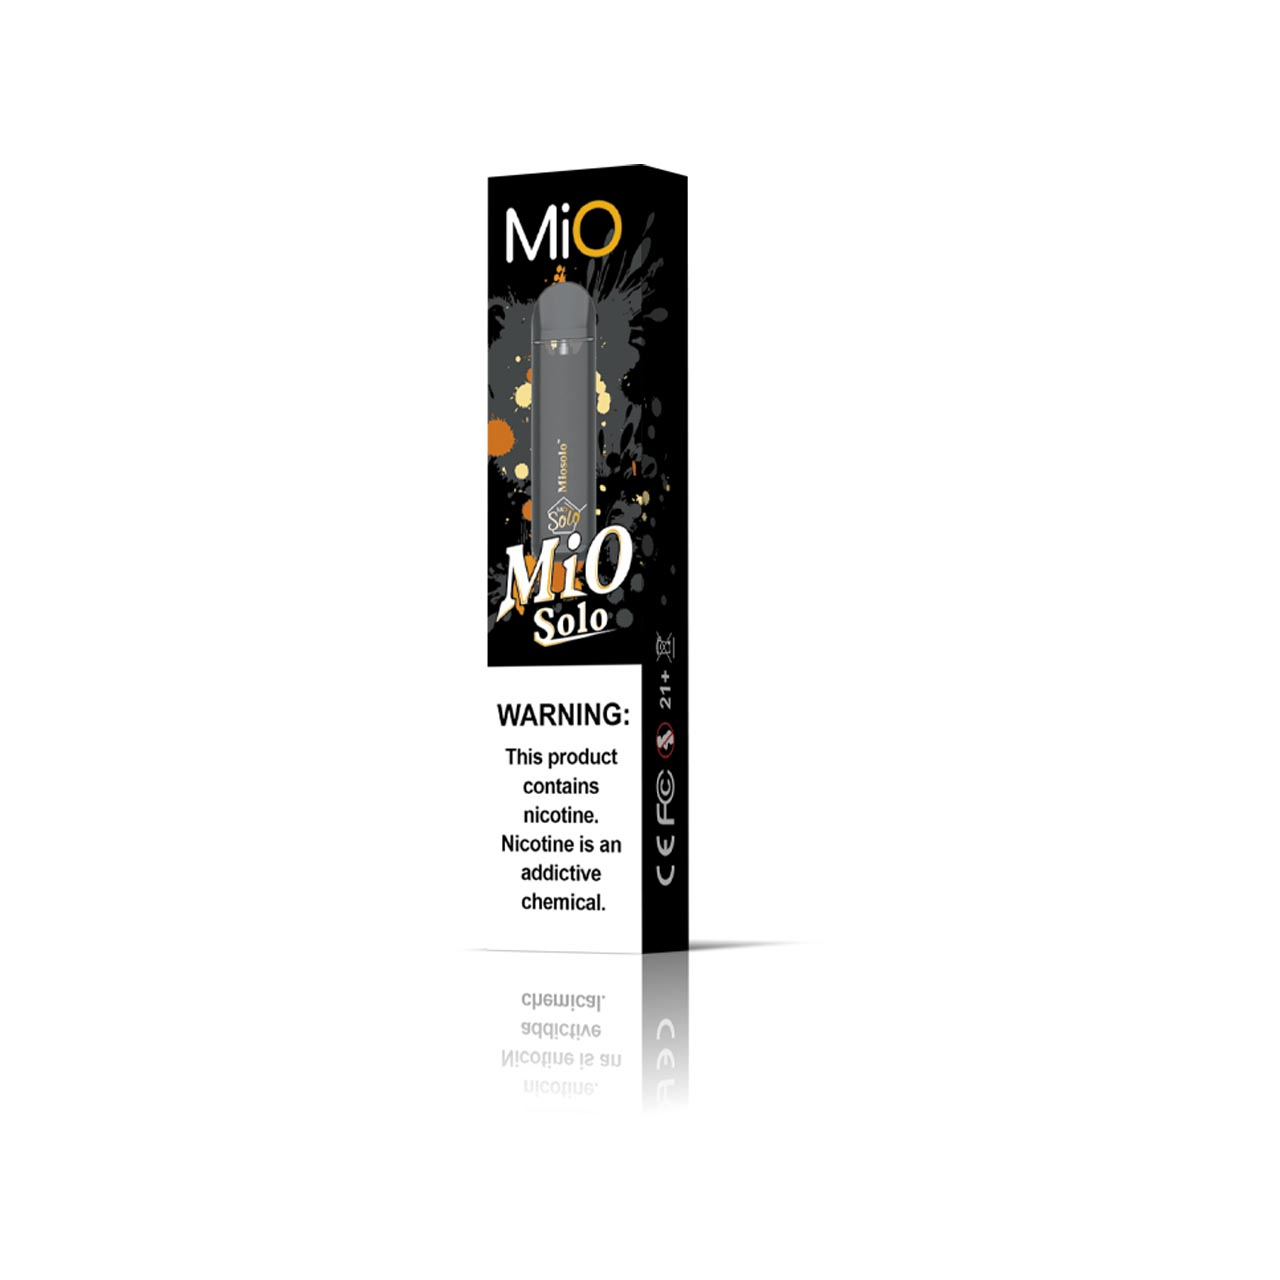 MiO Solo Pod Kit Wholesale | Mio Vapor Wholesale